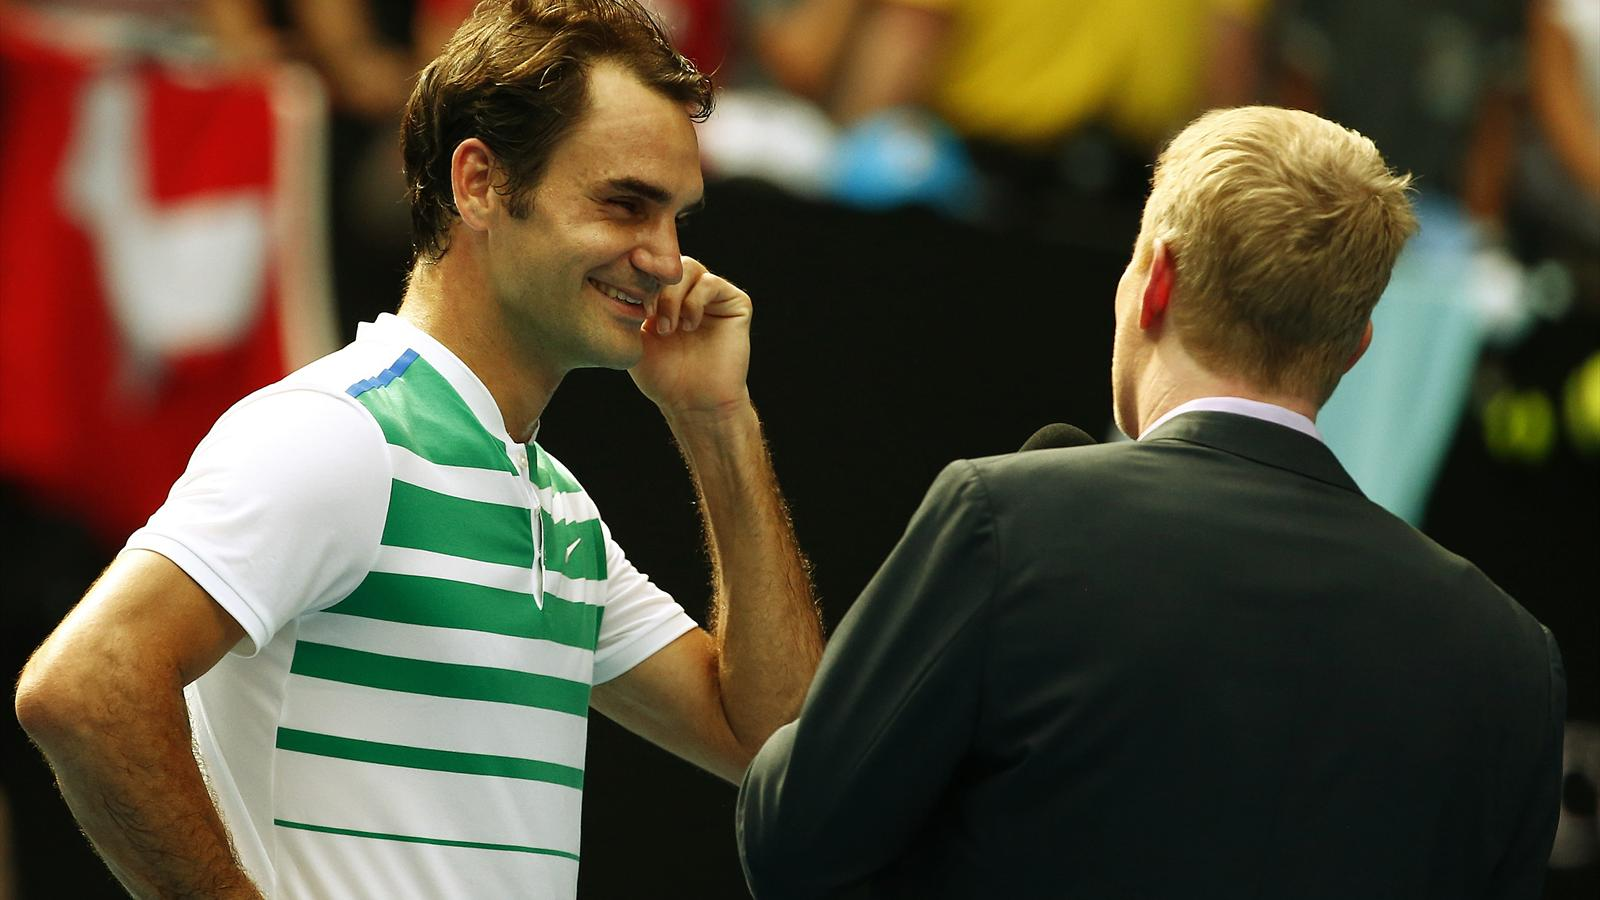 Switzerland's Roger Federer smiles as he talks to former tennis player Jim Courier during an interview after winning his quarter-final match against Czech Republic's Tomas Berdych at the Australian Open